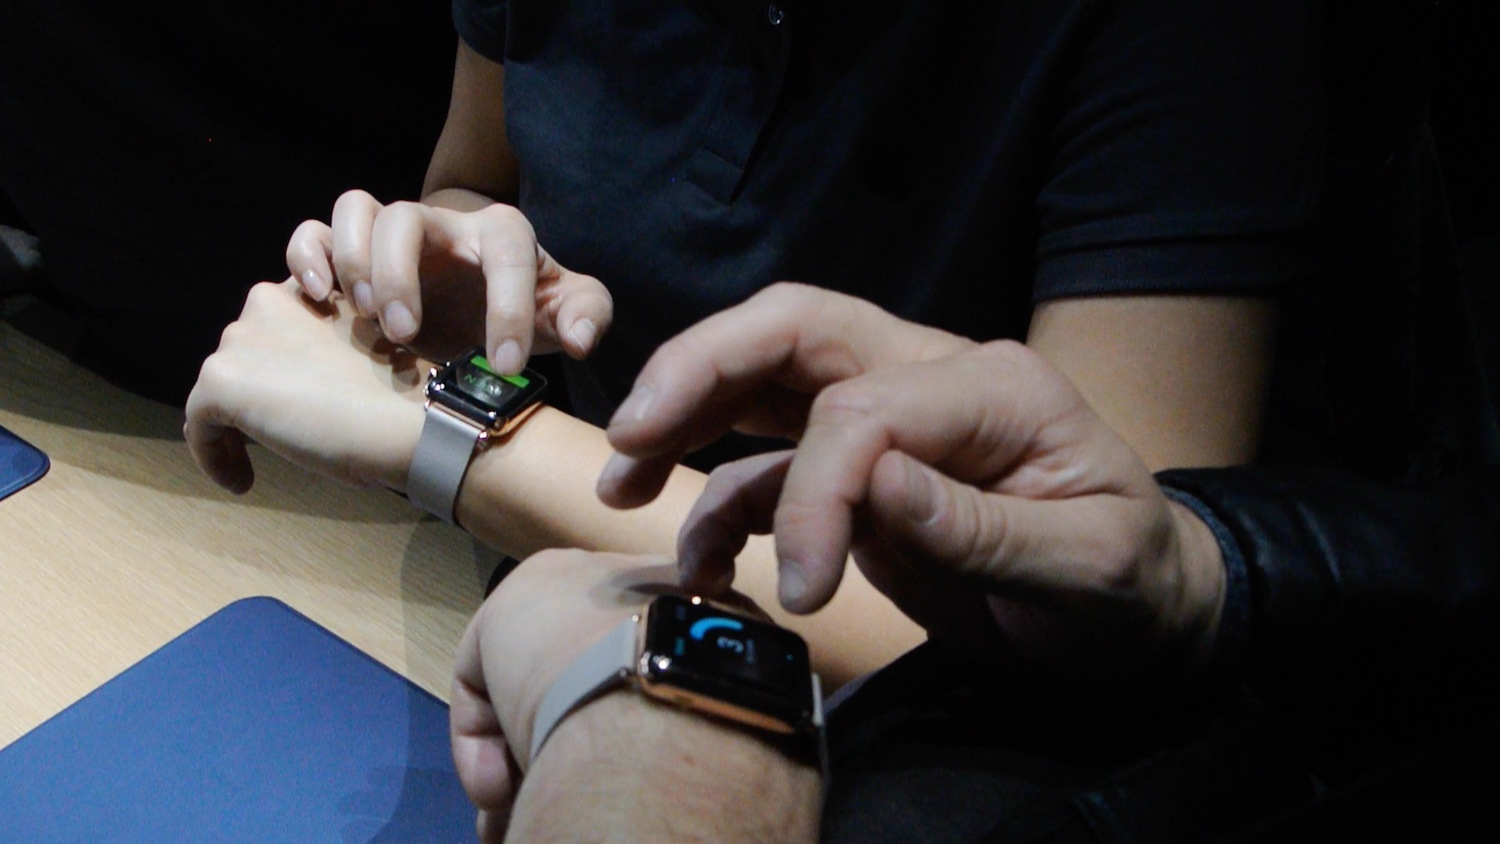 It should be on the alert for some of the latest rumors about the Apple Watch